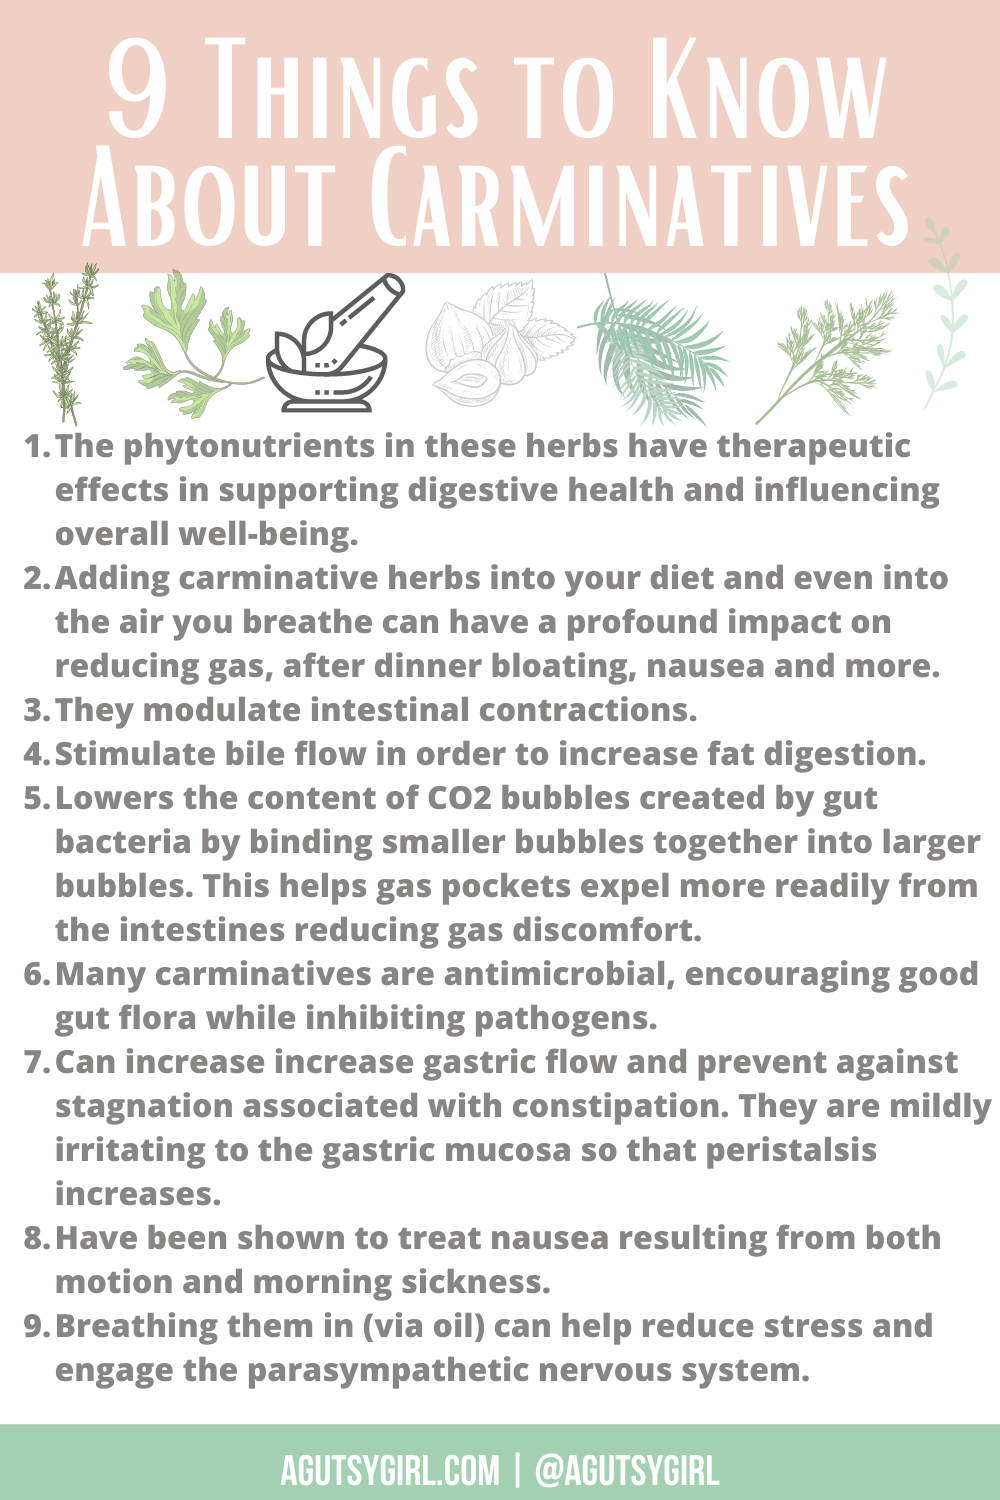 9 Things to Know About Carminatives agutsygirl.com #herbs #guthealth #digestivehealth